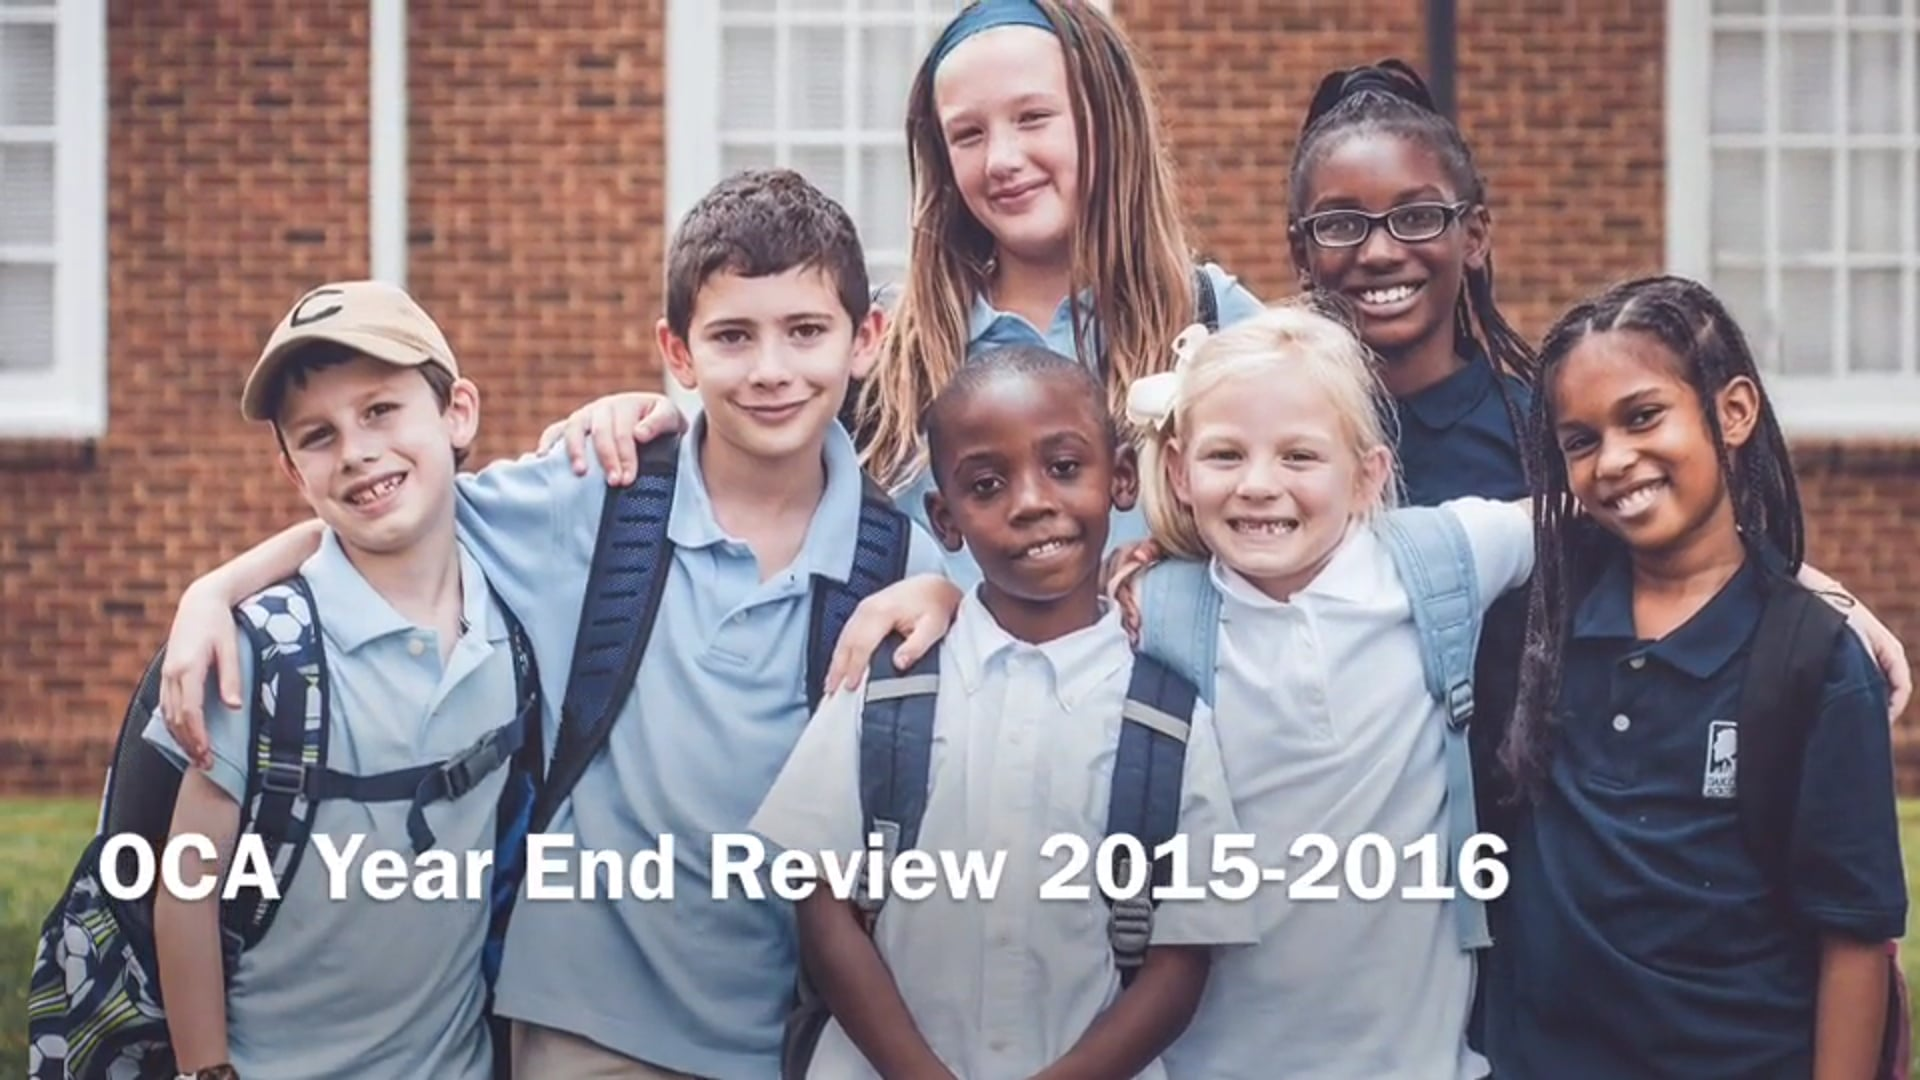 OCA Year End Review 2015-2016